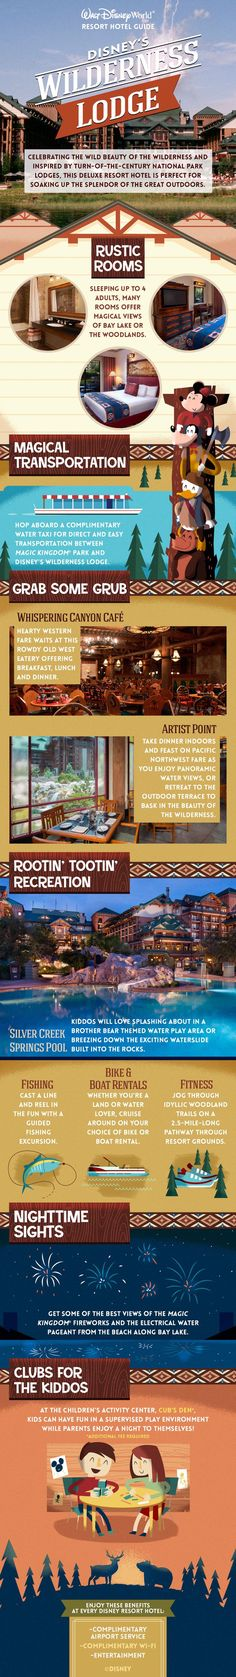 Escape to the rustic majesty of America's Great Northwest. Inspired by turn-of-the-century National Park lodges, Disney's Wilderness Lodge at Walt Disney World Resort celebrates American craftsmanship and honors the beauty of the untamed wilderness. #3DTC